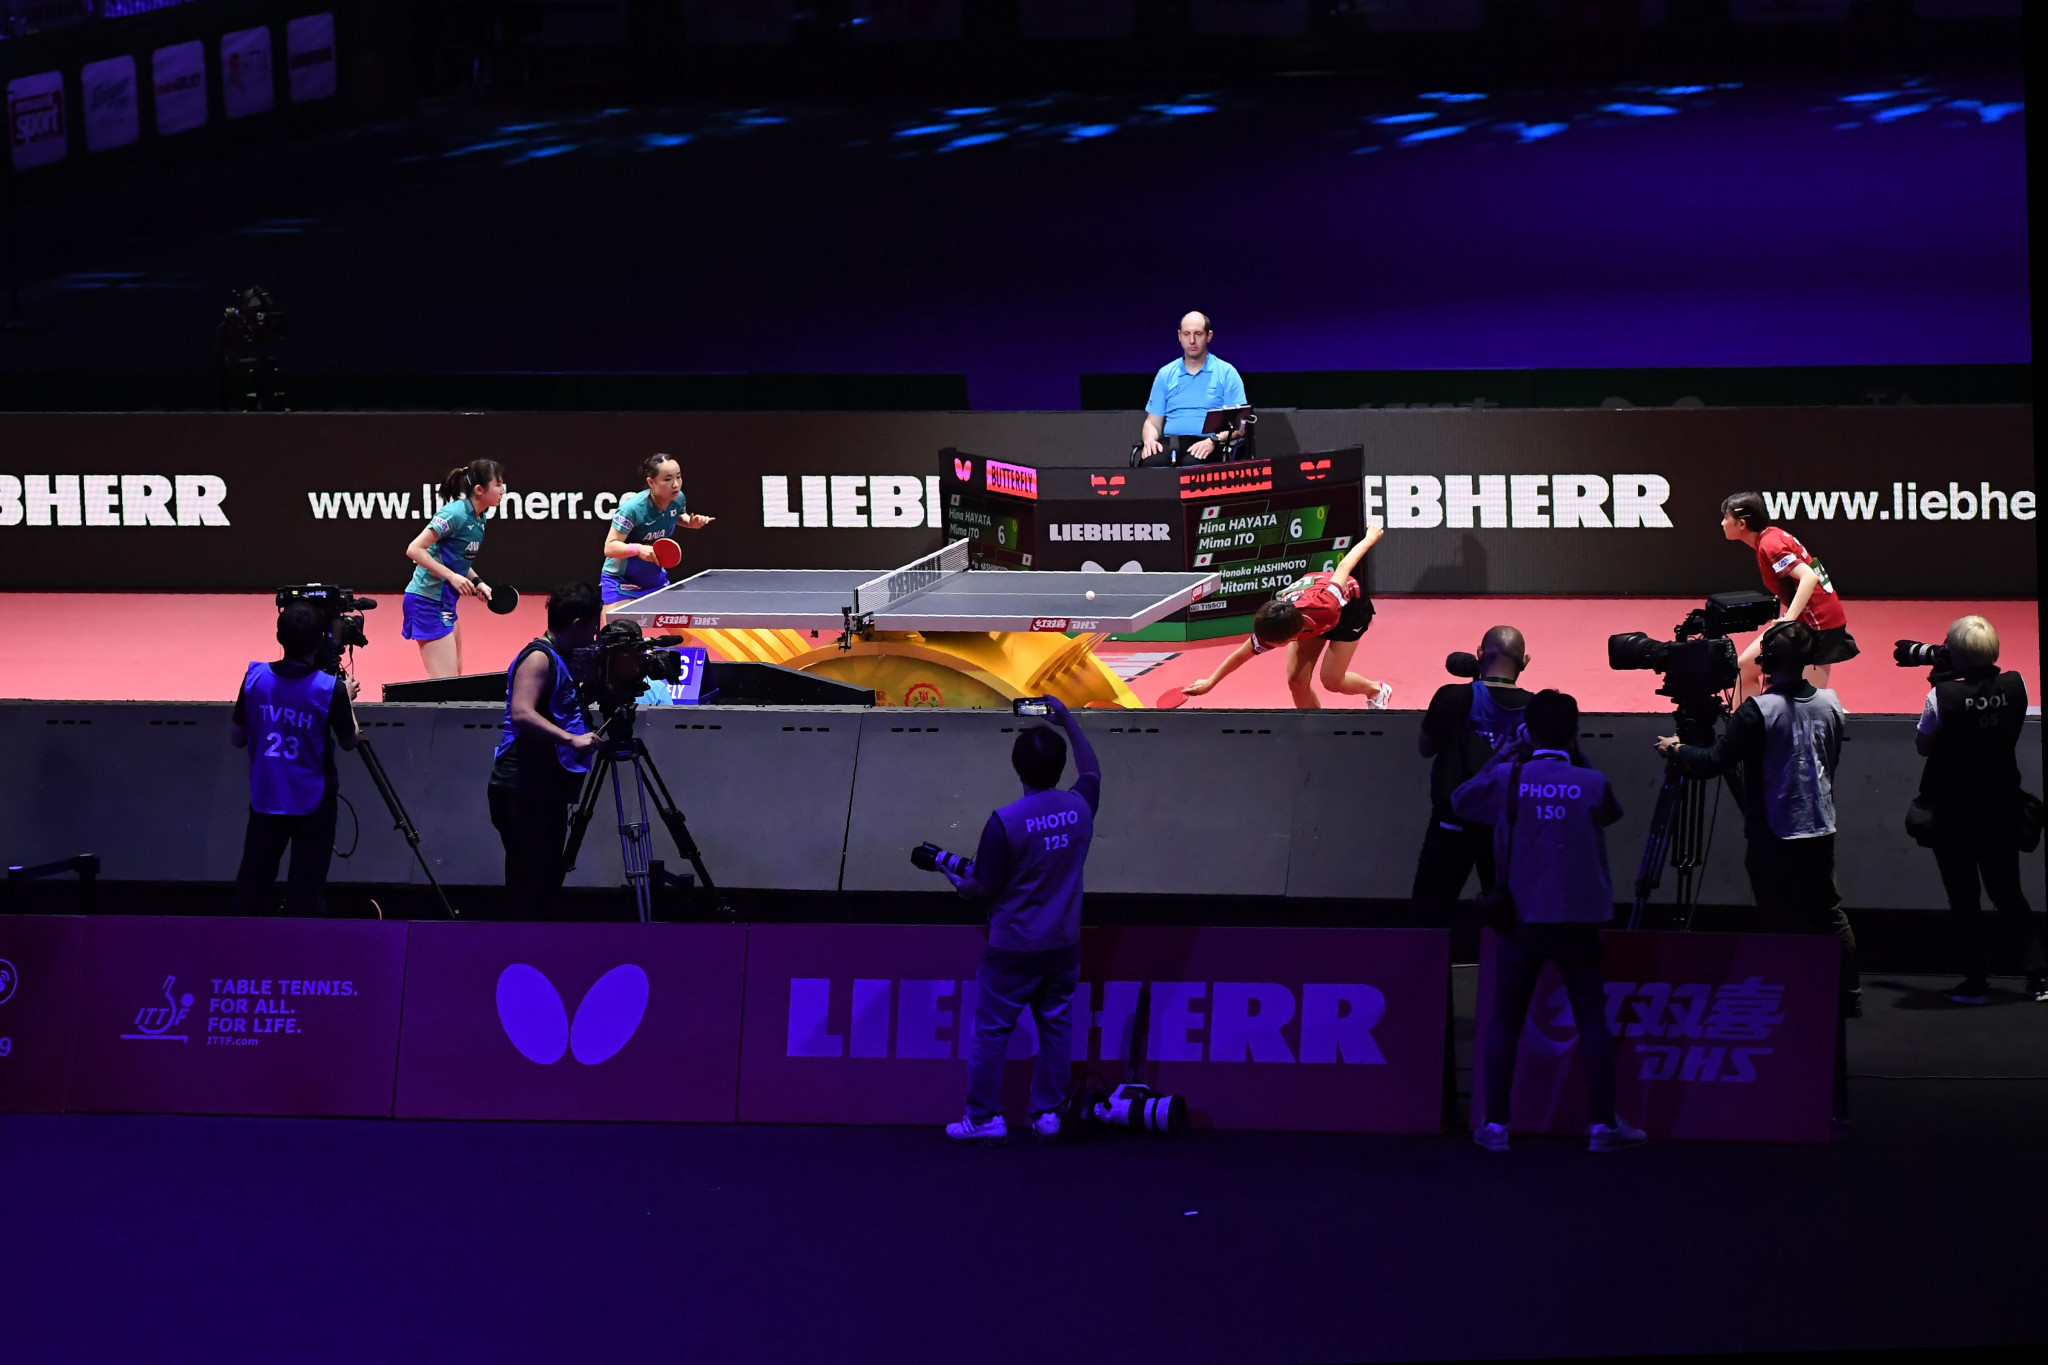 ITTF to hold AGM and Presidential election in Houston after legal opinion received